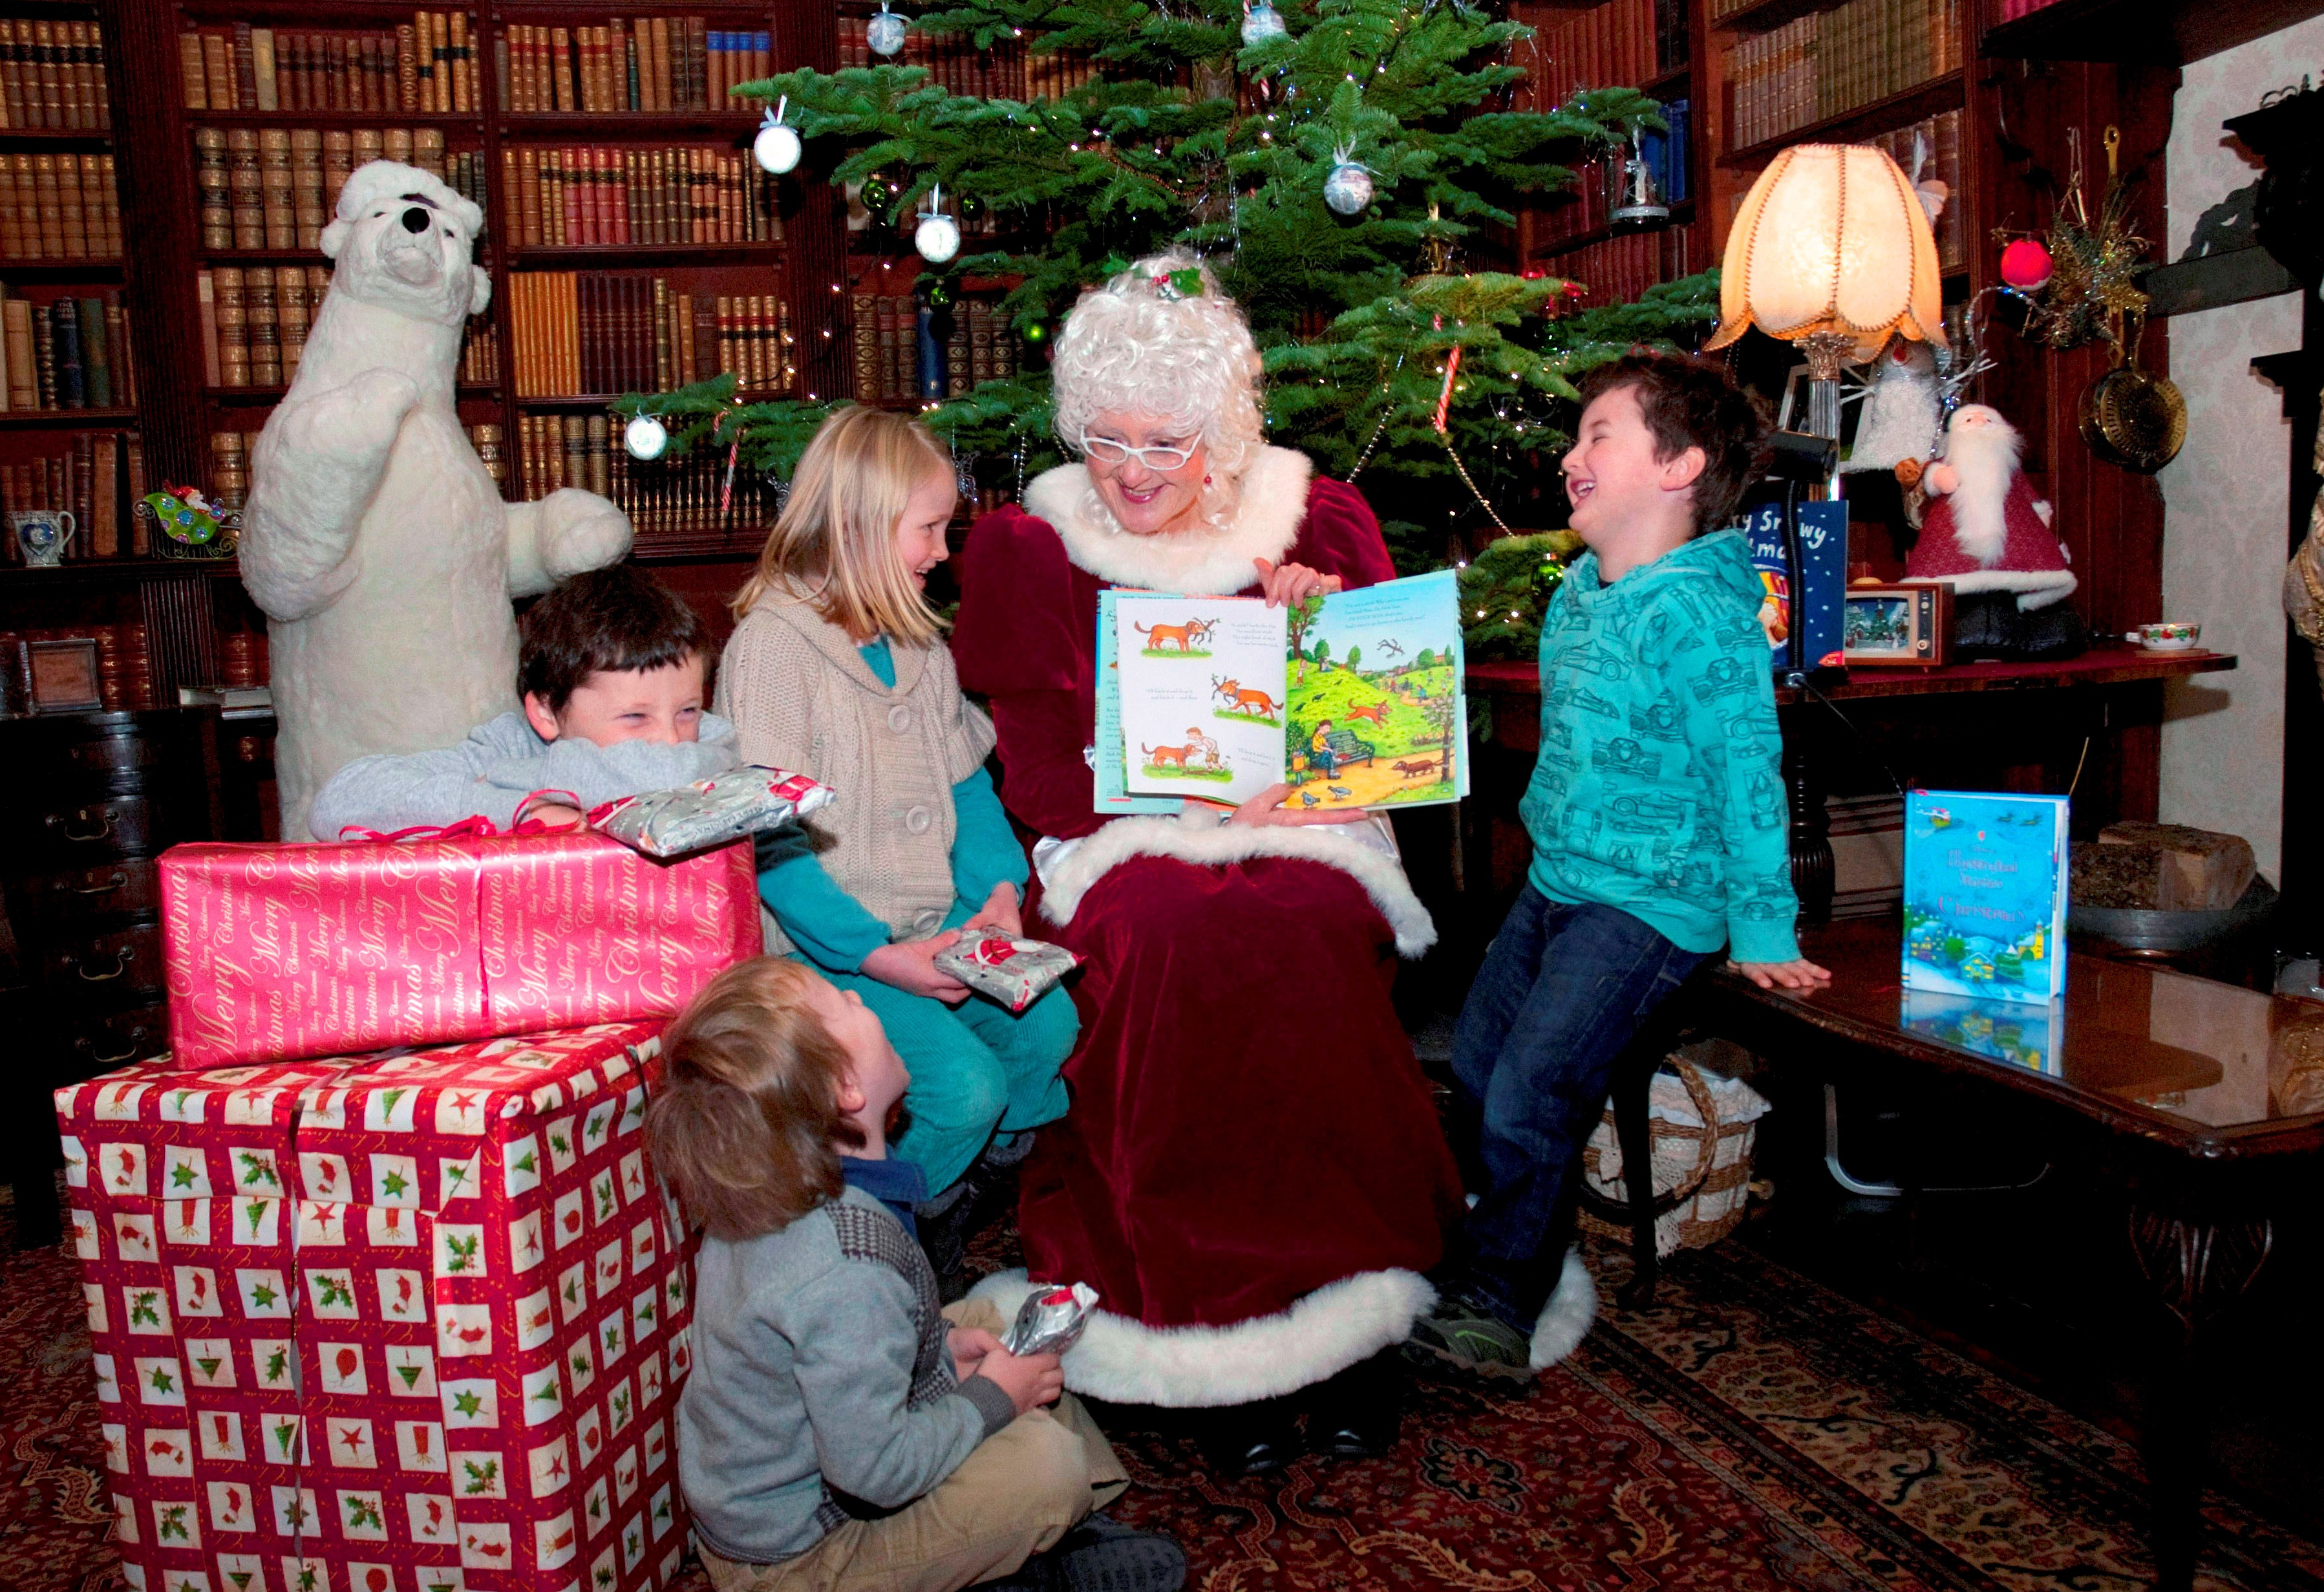 Things to do in County Mayo, Ireland - Winter Wonderland at Westport House - YourDaysOut - Photo 4